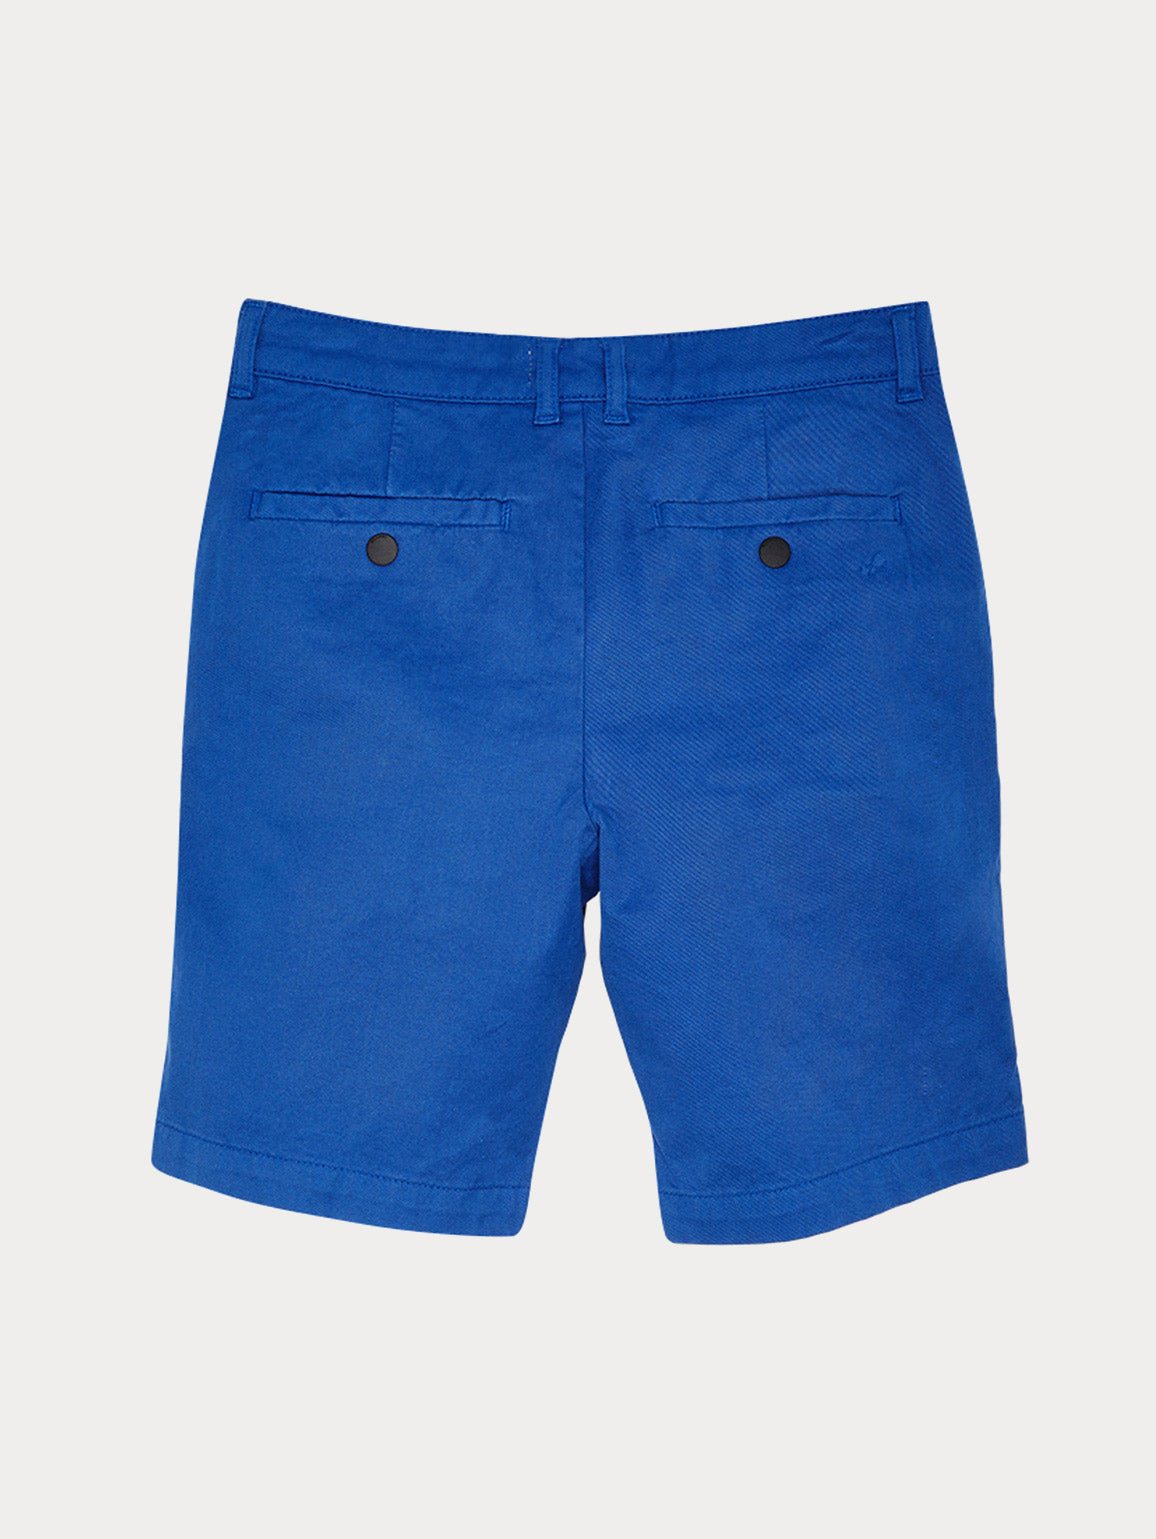 Boys - Jacob Chino Short | Prince - DL1961